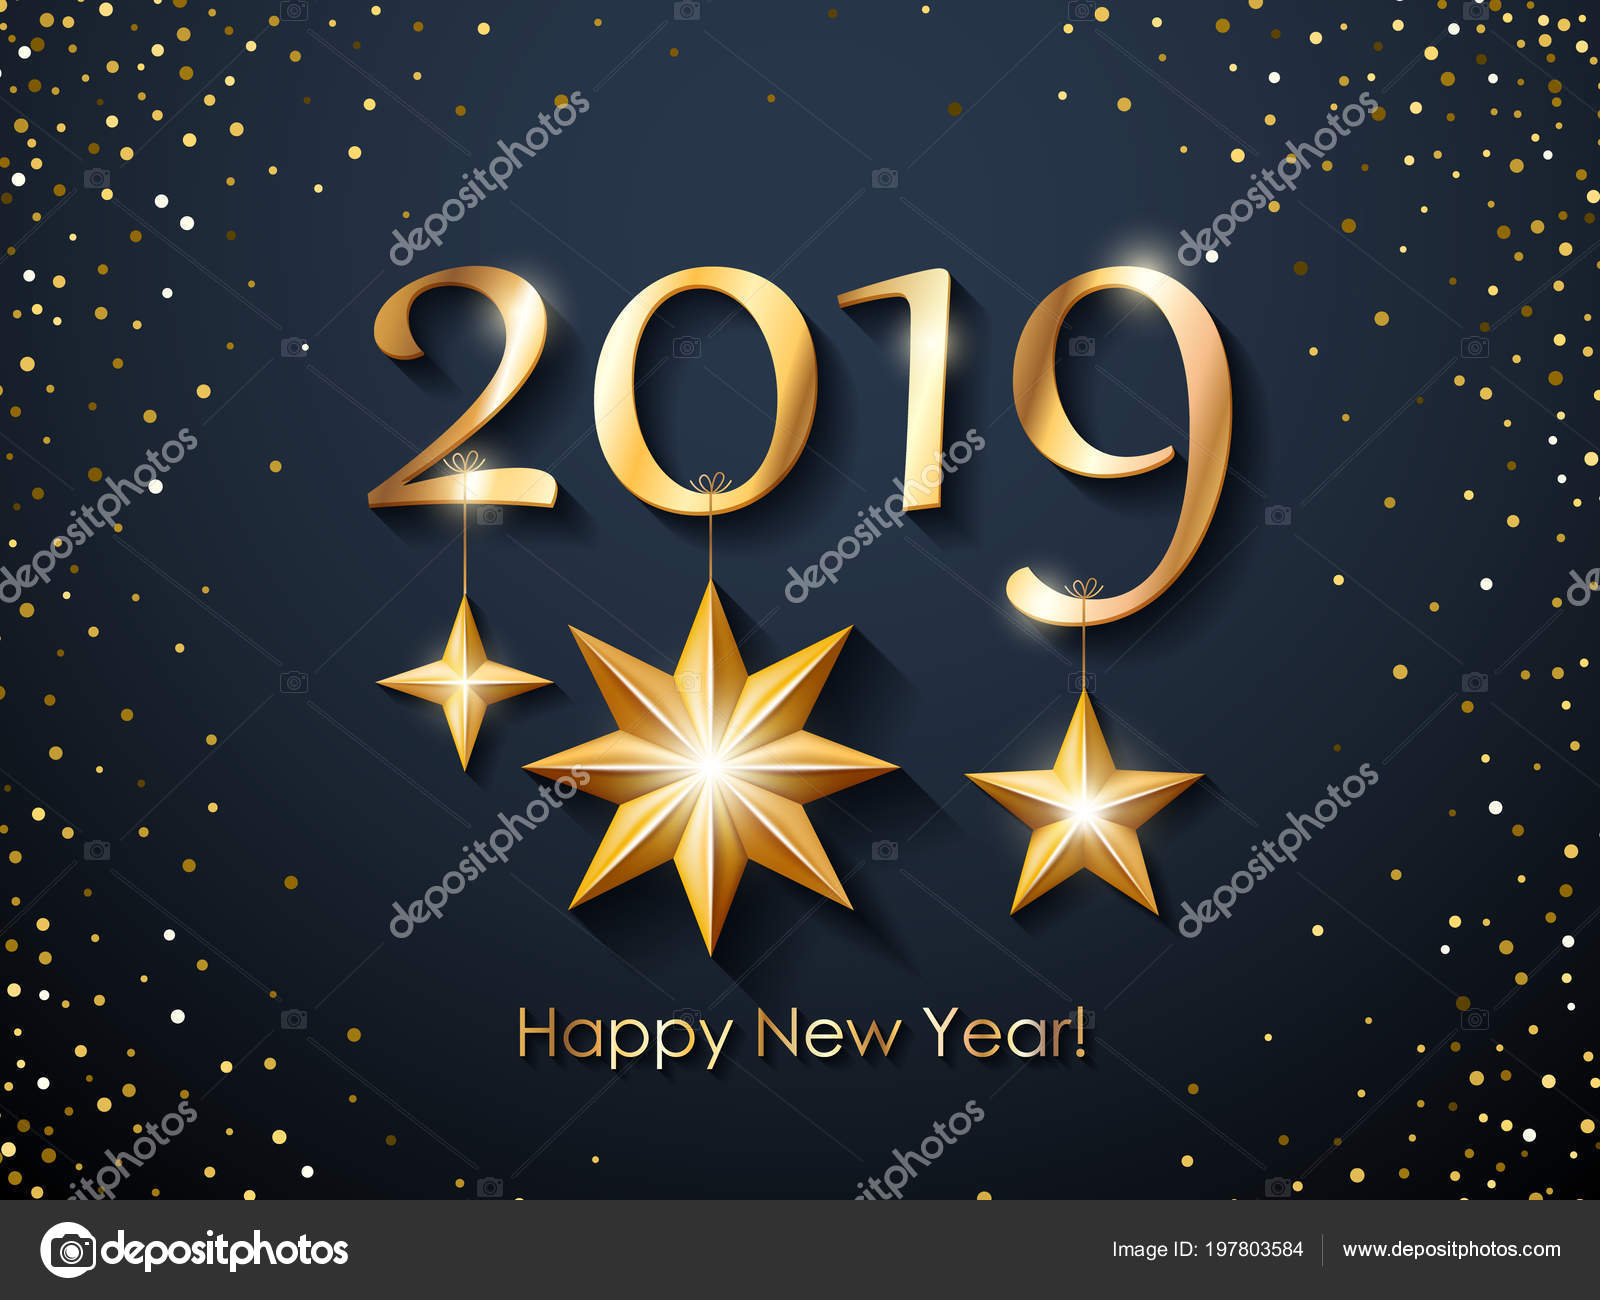 2019 happy new year background with golden stars and glitter christmas winter holidays design seasonal greeting card calendar brochure template